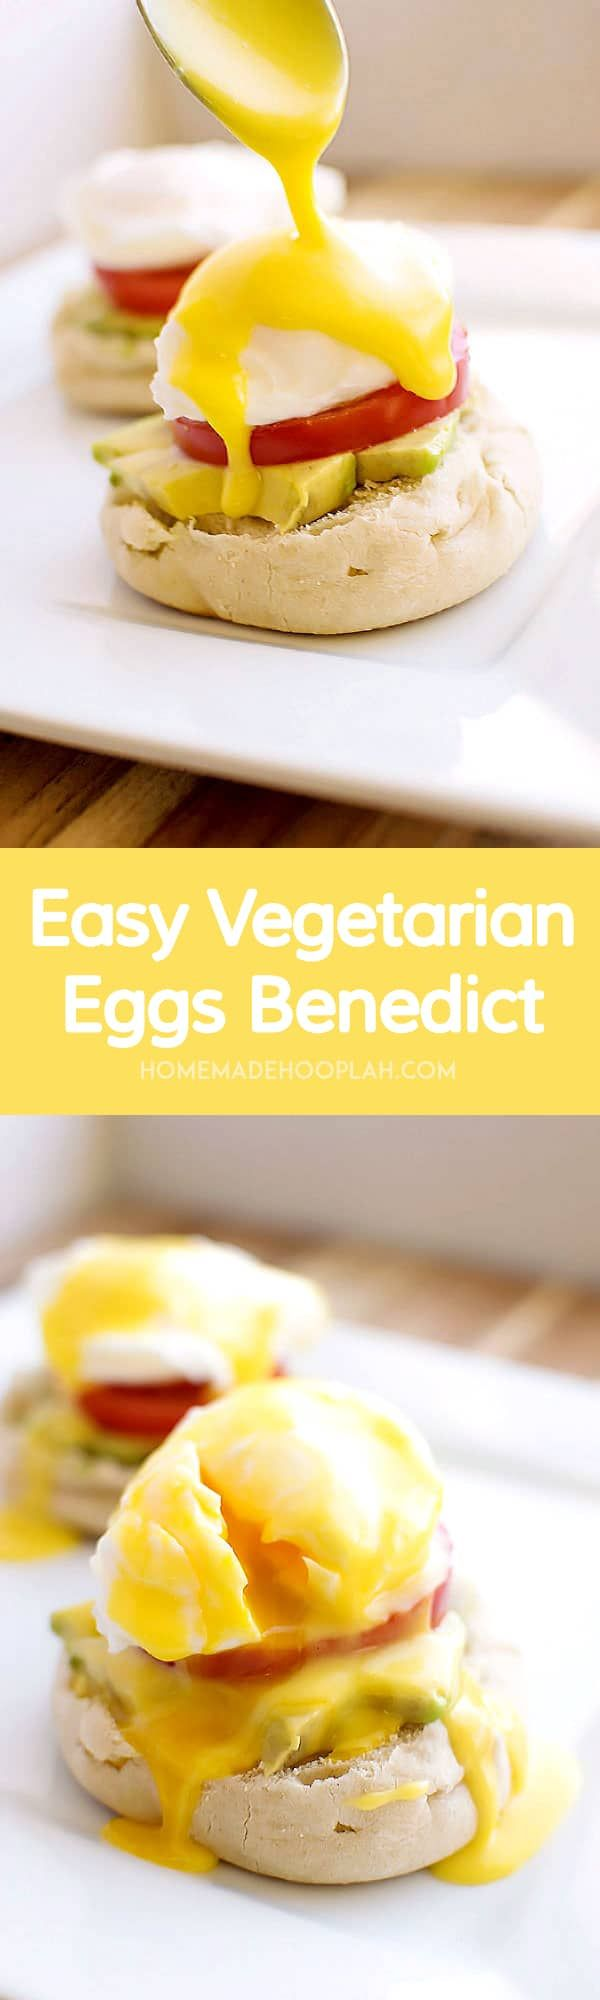 Easy Vegetarian Eggs Benedict! Skip the morning rush at the restaurant and make delicious Eggs Benedict at home - vegetarian style! Poached eggs with light seasoning, avocado, and tomato. | HomemadeHooplah.com